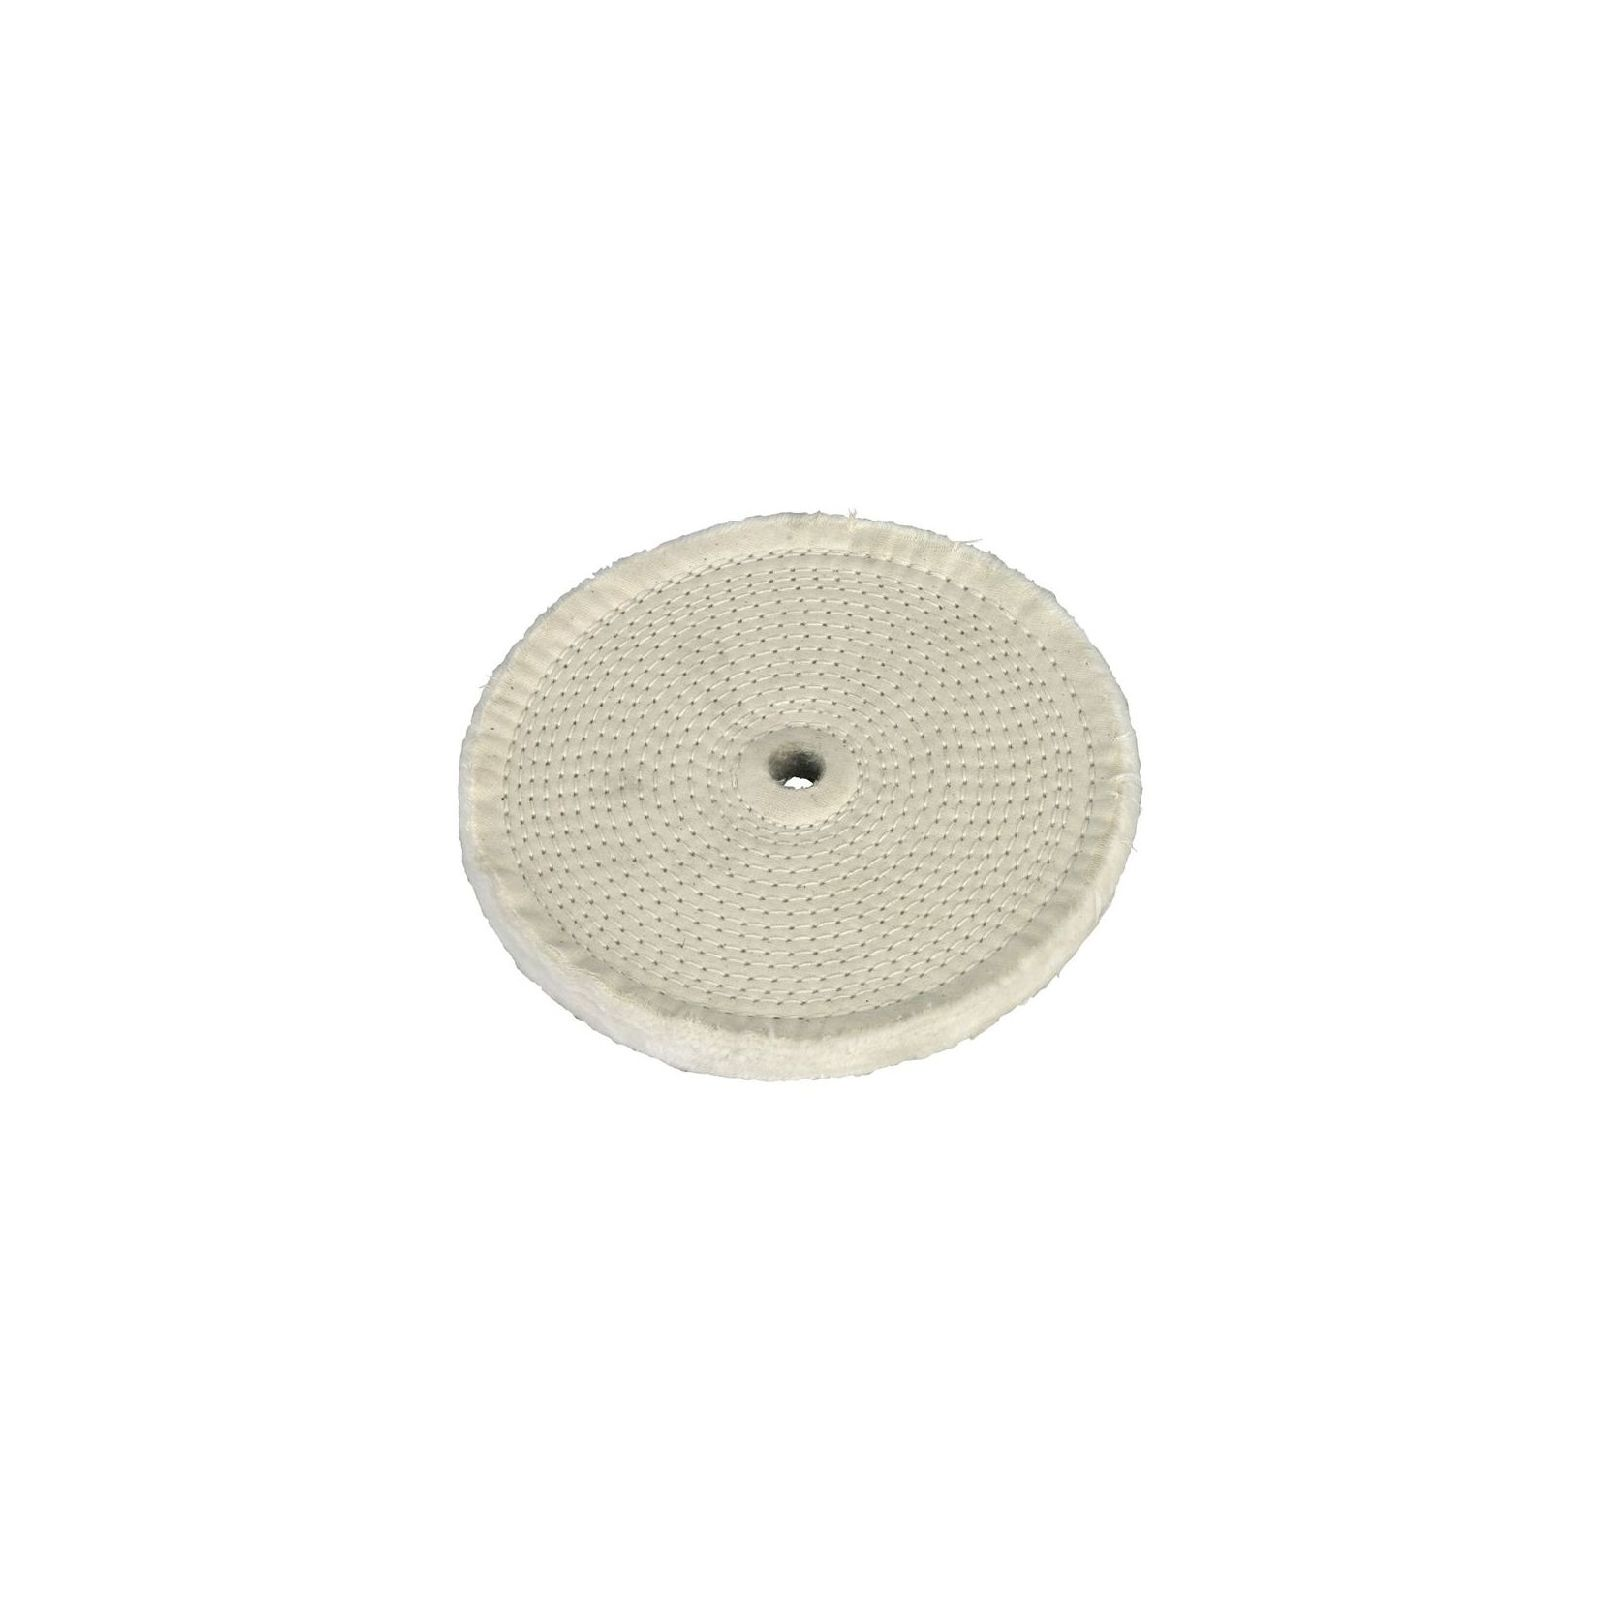 Sealey Buffing Wheel 200mm For Bench Grinder Bench Power Tool Accessories Ebay